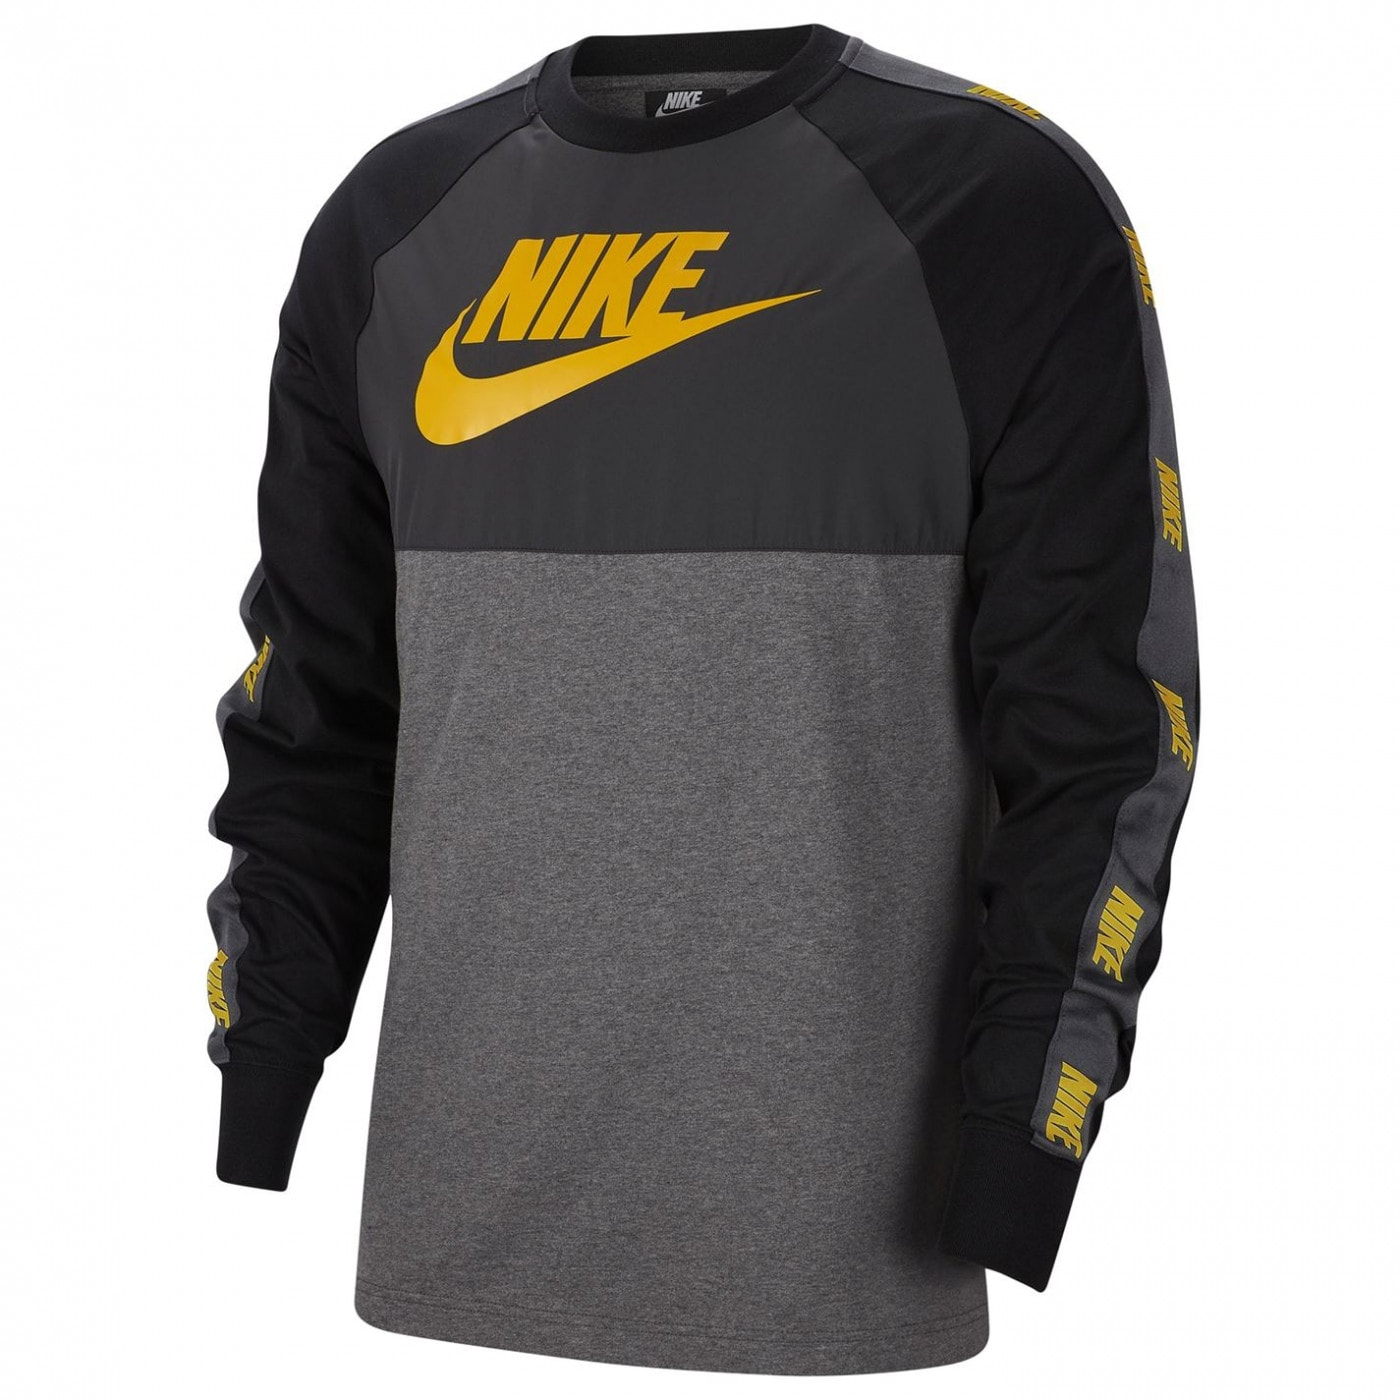 Men's sweatshirt Nike Hybrid